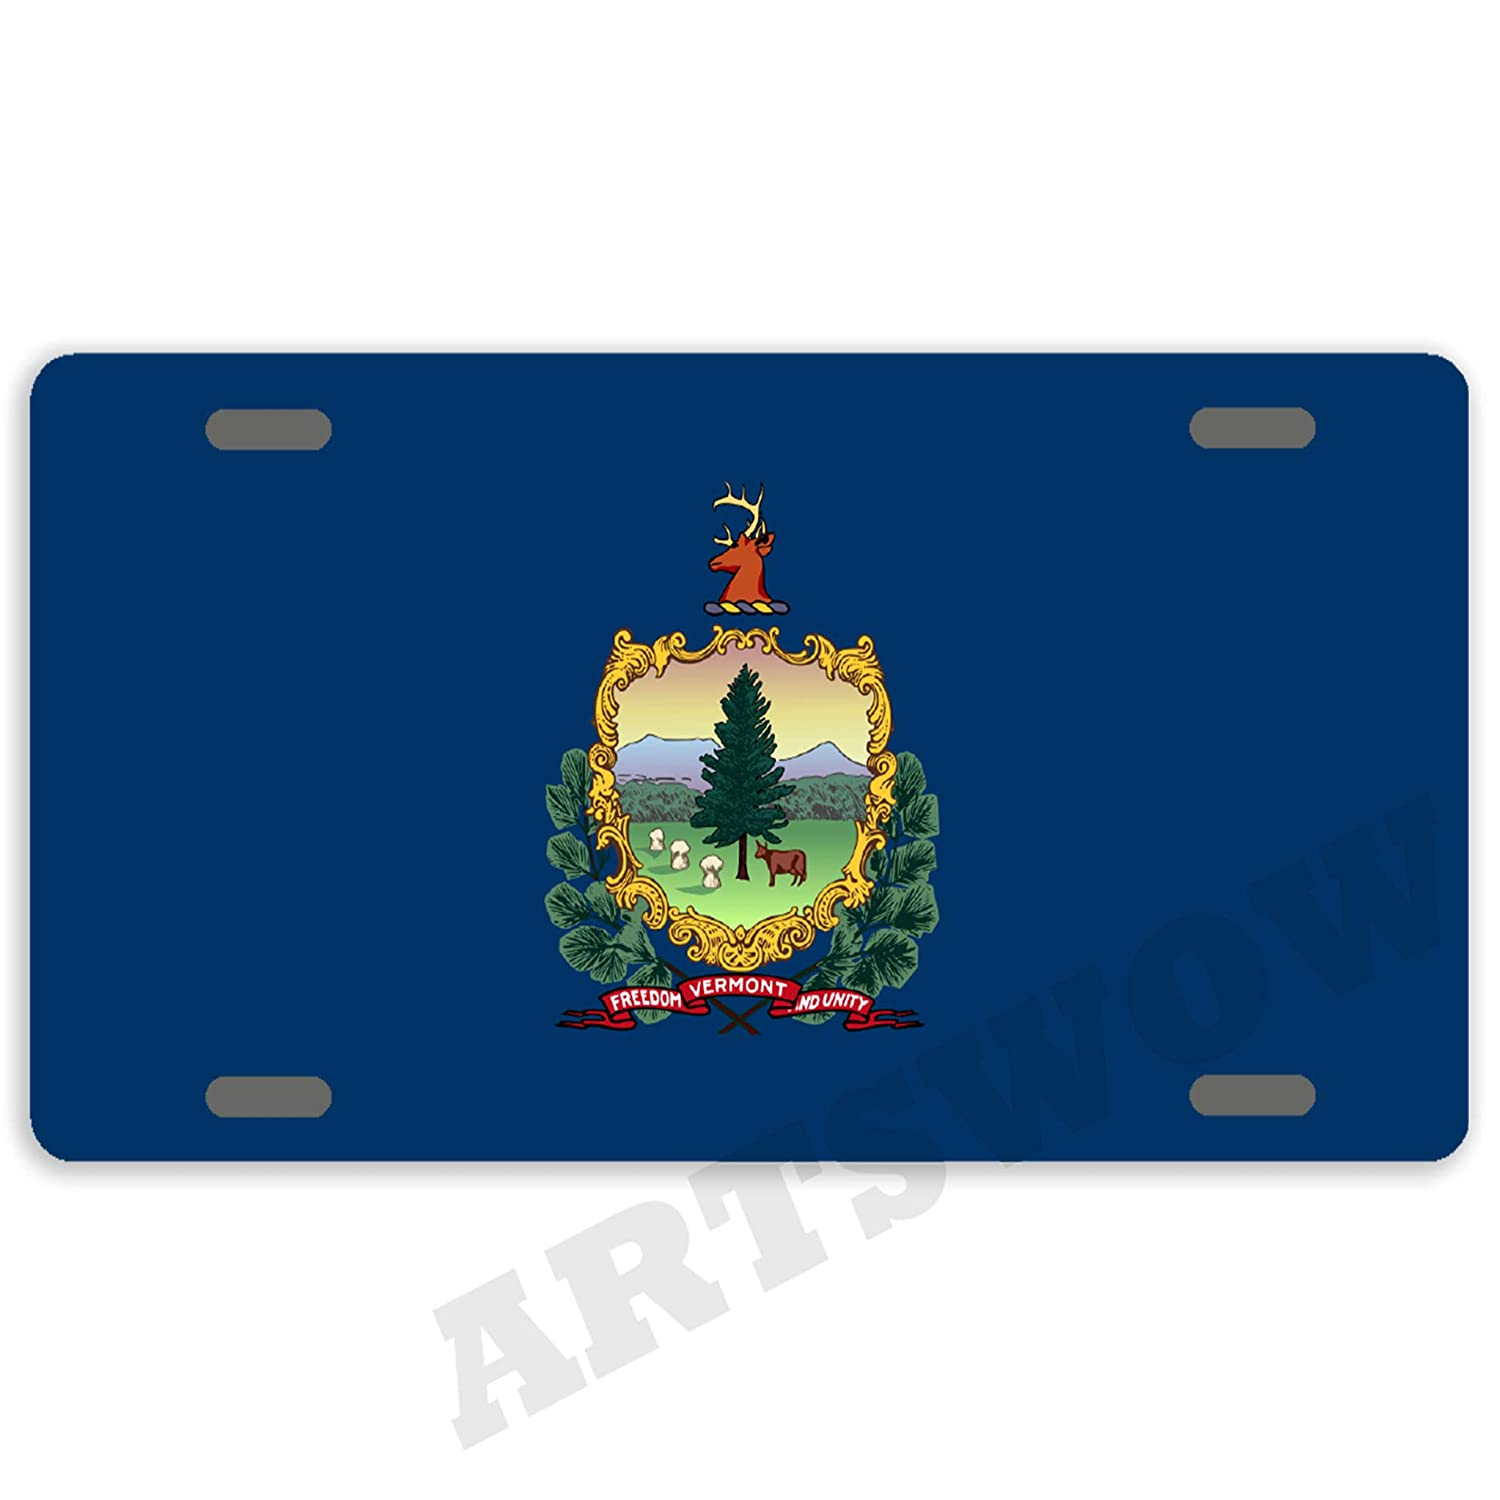 Wyoming State Flag Any Text Personalized Novelty Car License Plate